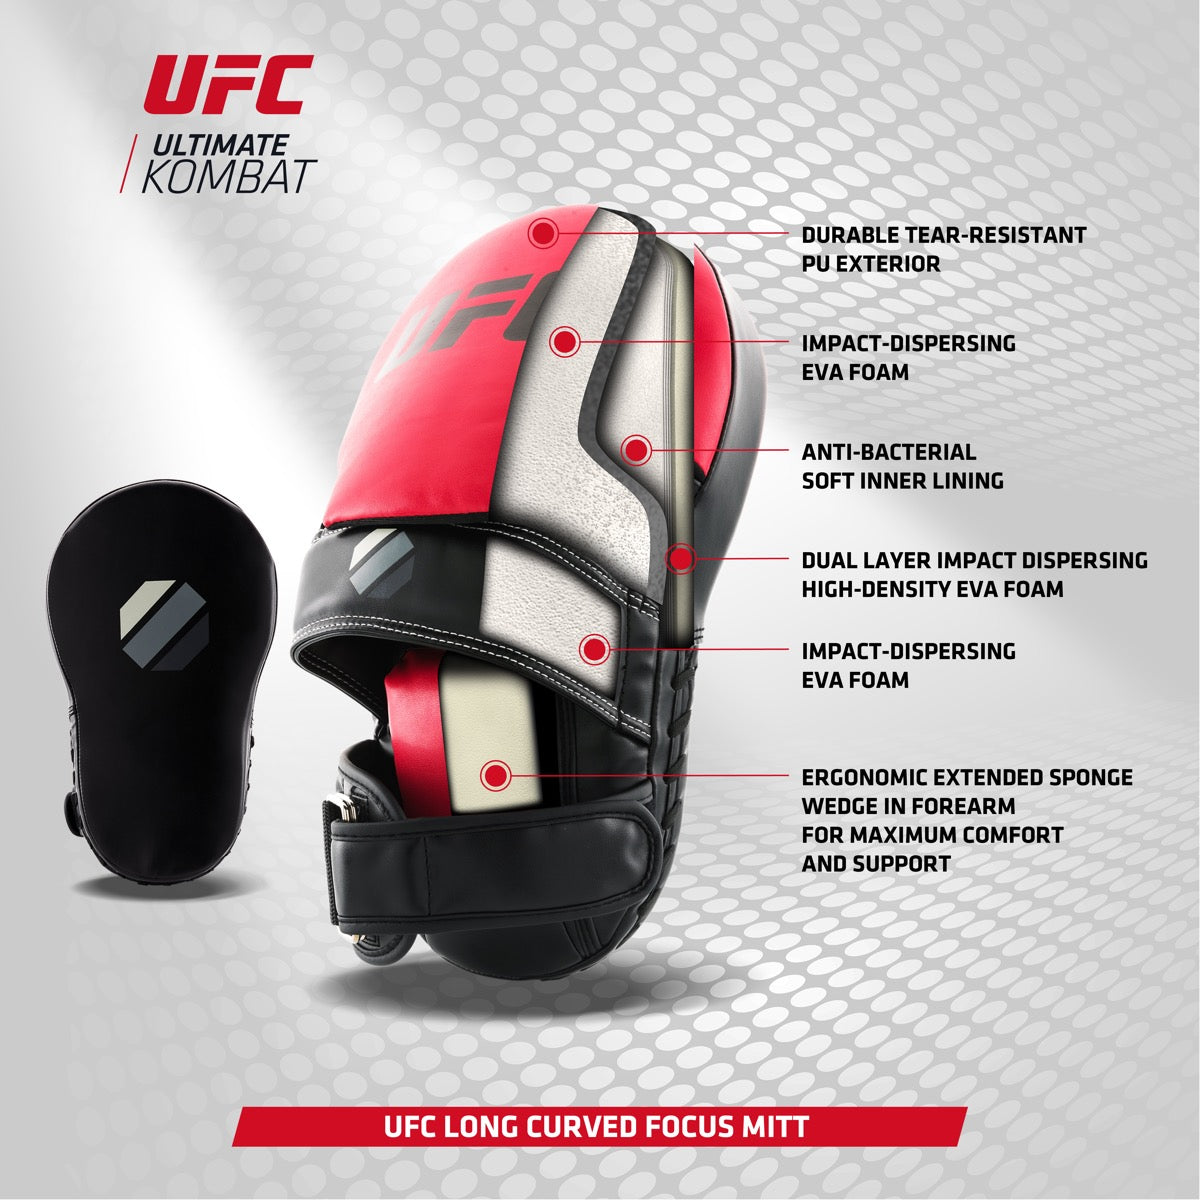 Cross section diagram of UFC Long Curved Focus Mitt including key features